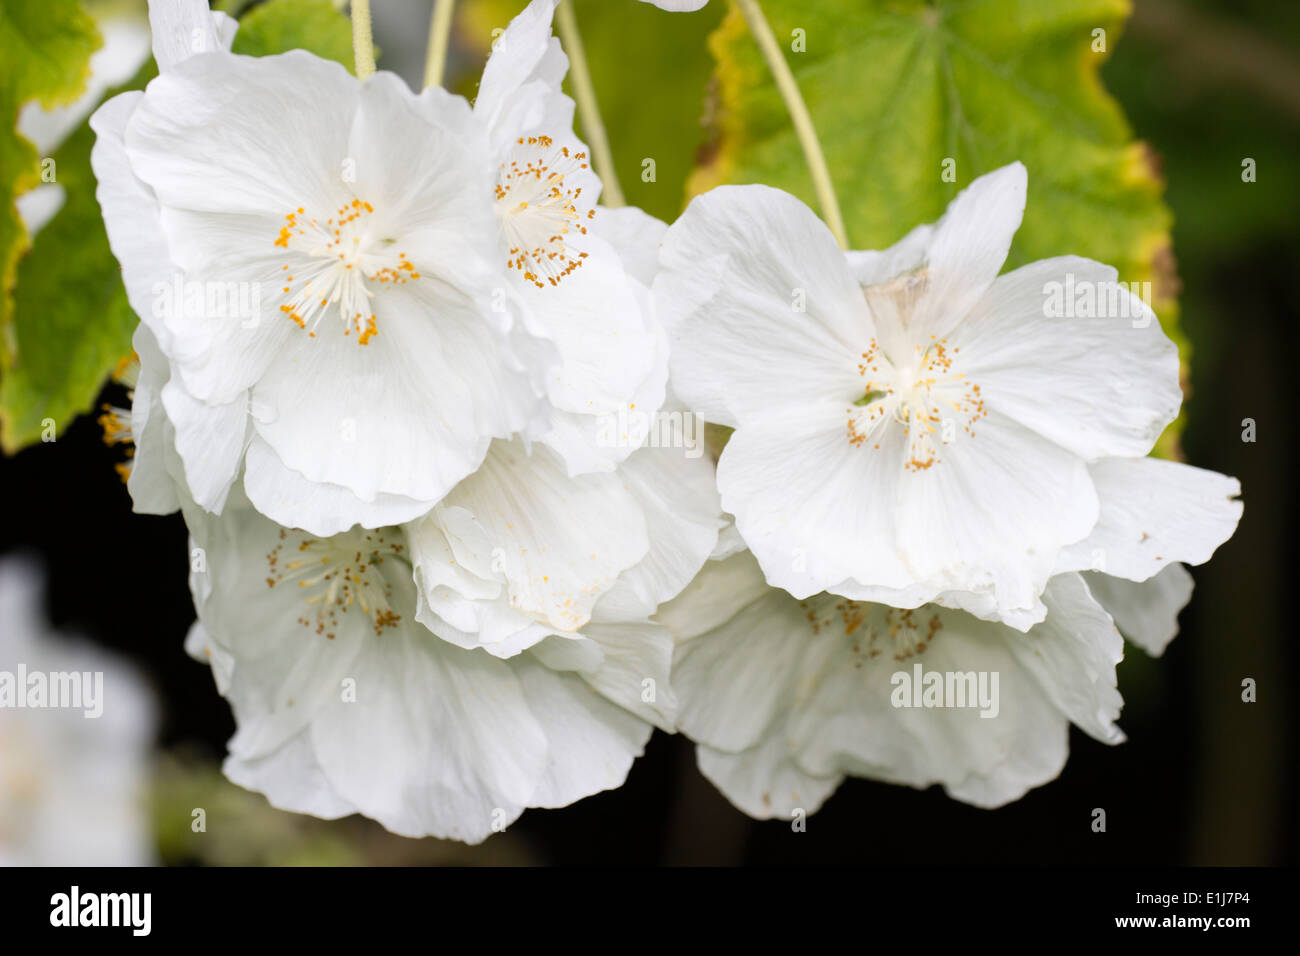 White flowers of the flowering maple, Abutilon vitifolium 'Tennant's White' - Stock Image